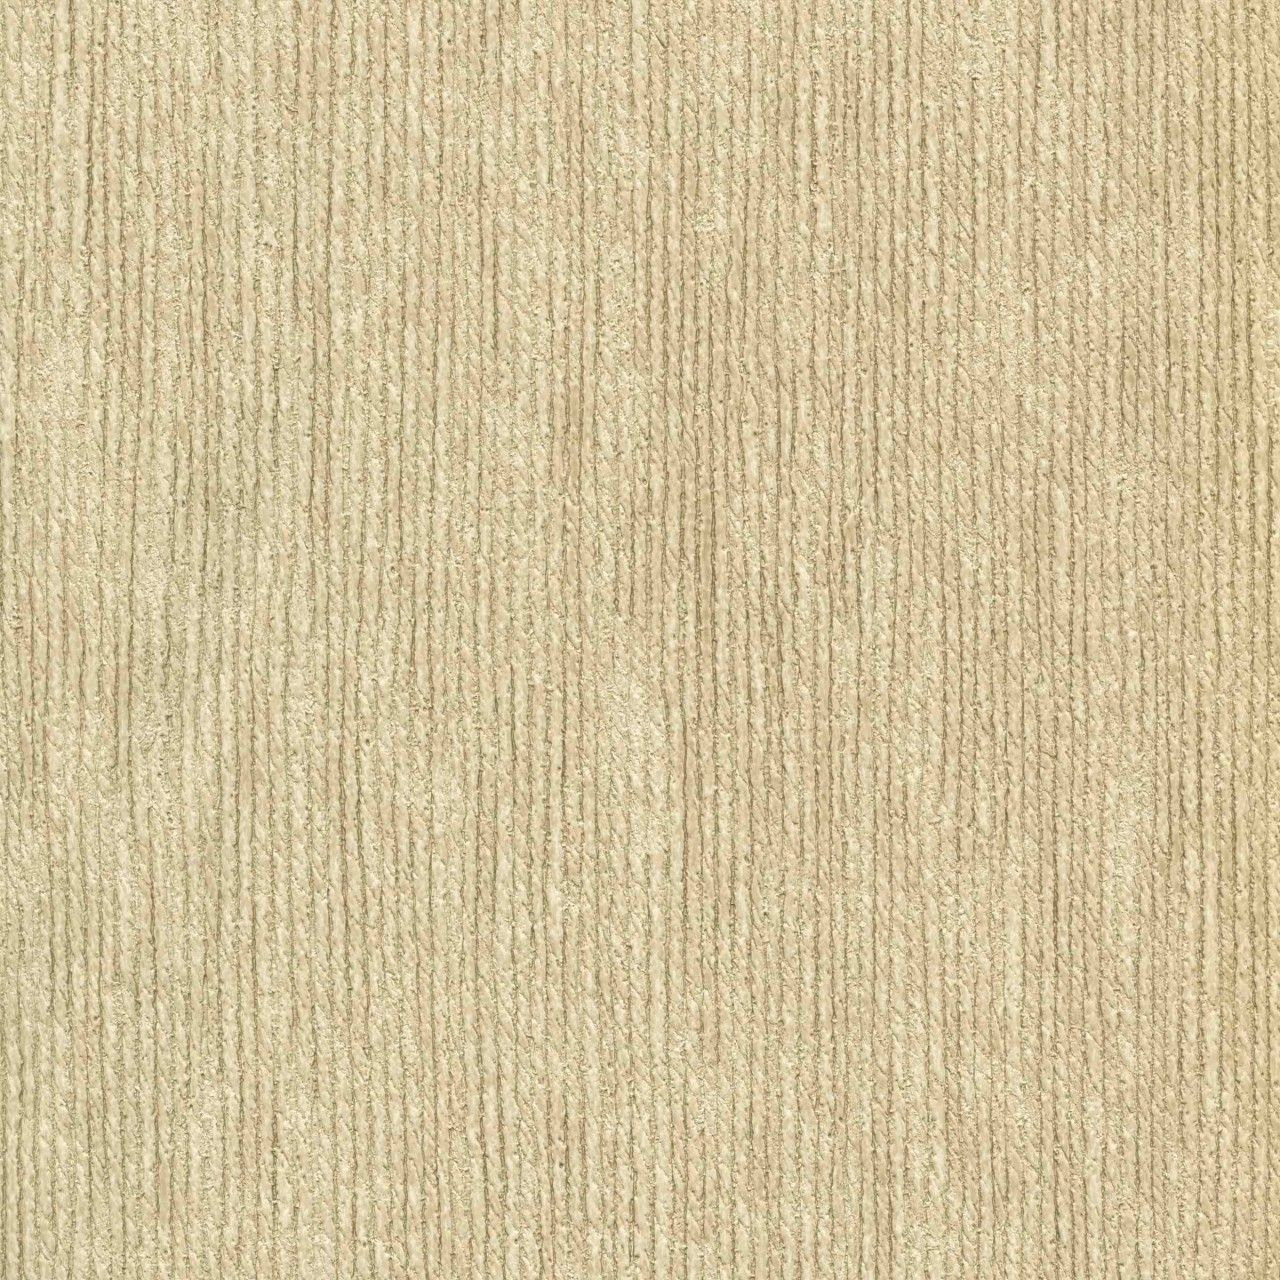 1280x1280 Fresh Contemporary Textured Wallpaper 53 Awesome to wallpaper ideas ...